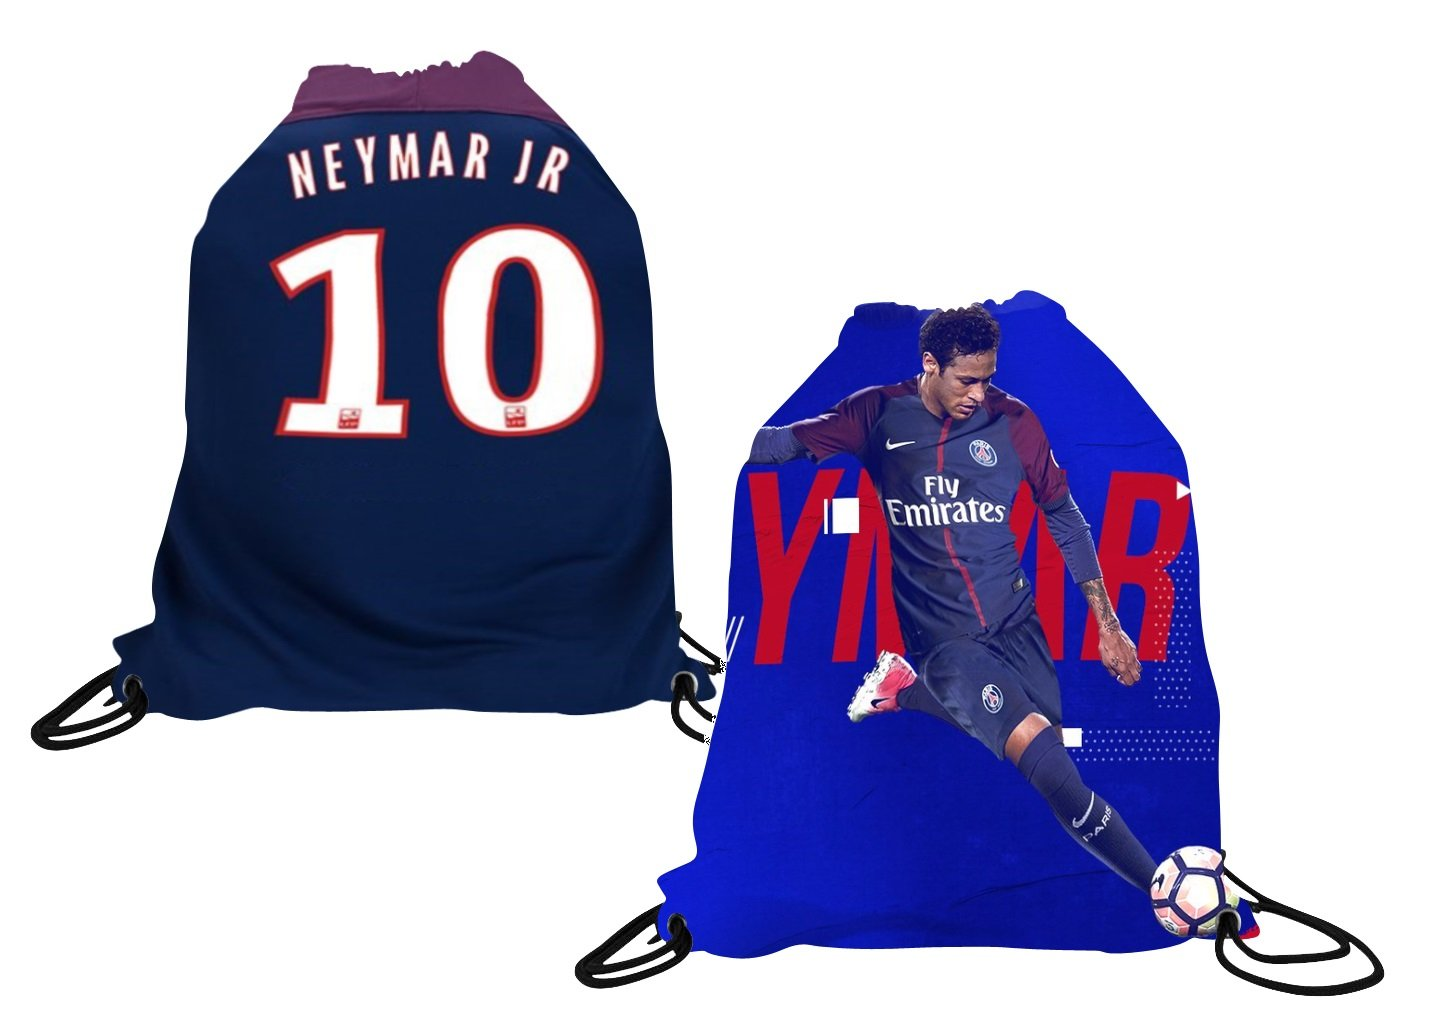 Neymar Jersey Style T-shirt Kids Neymar Jr Jersey PSG T-shirt Gift Set Youth Sizes ✓ Premium Quality ✓ Lightweight Breathable Material ✓ Soccer Backpack Gift Packaging